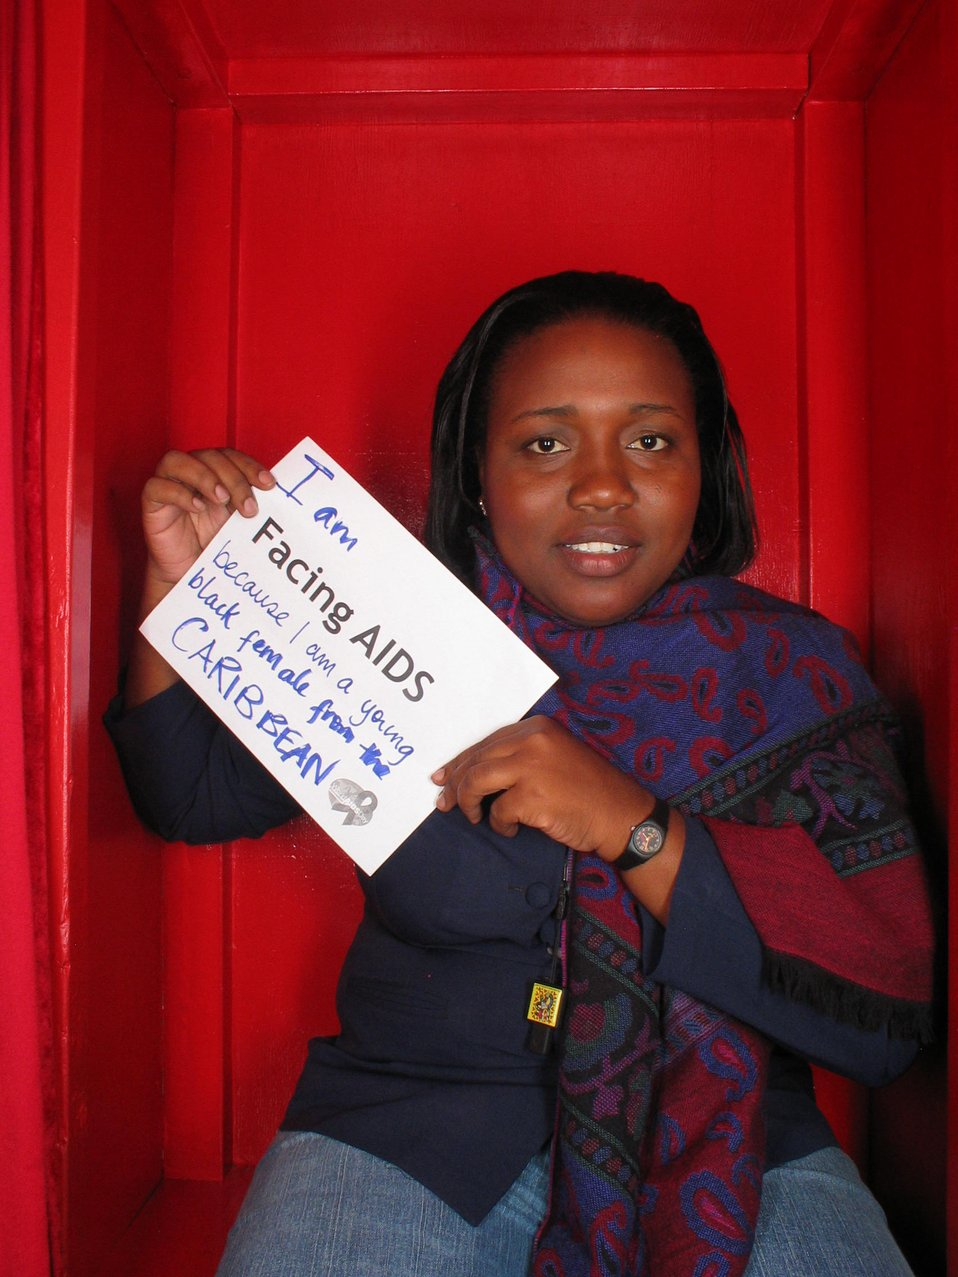 I am Facing AIDS because I am a young black female from the Caribbean